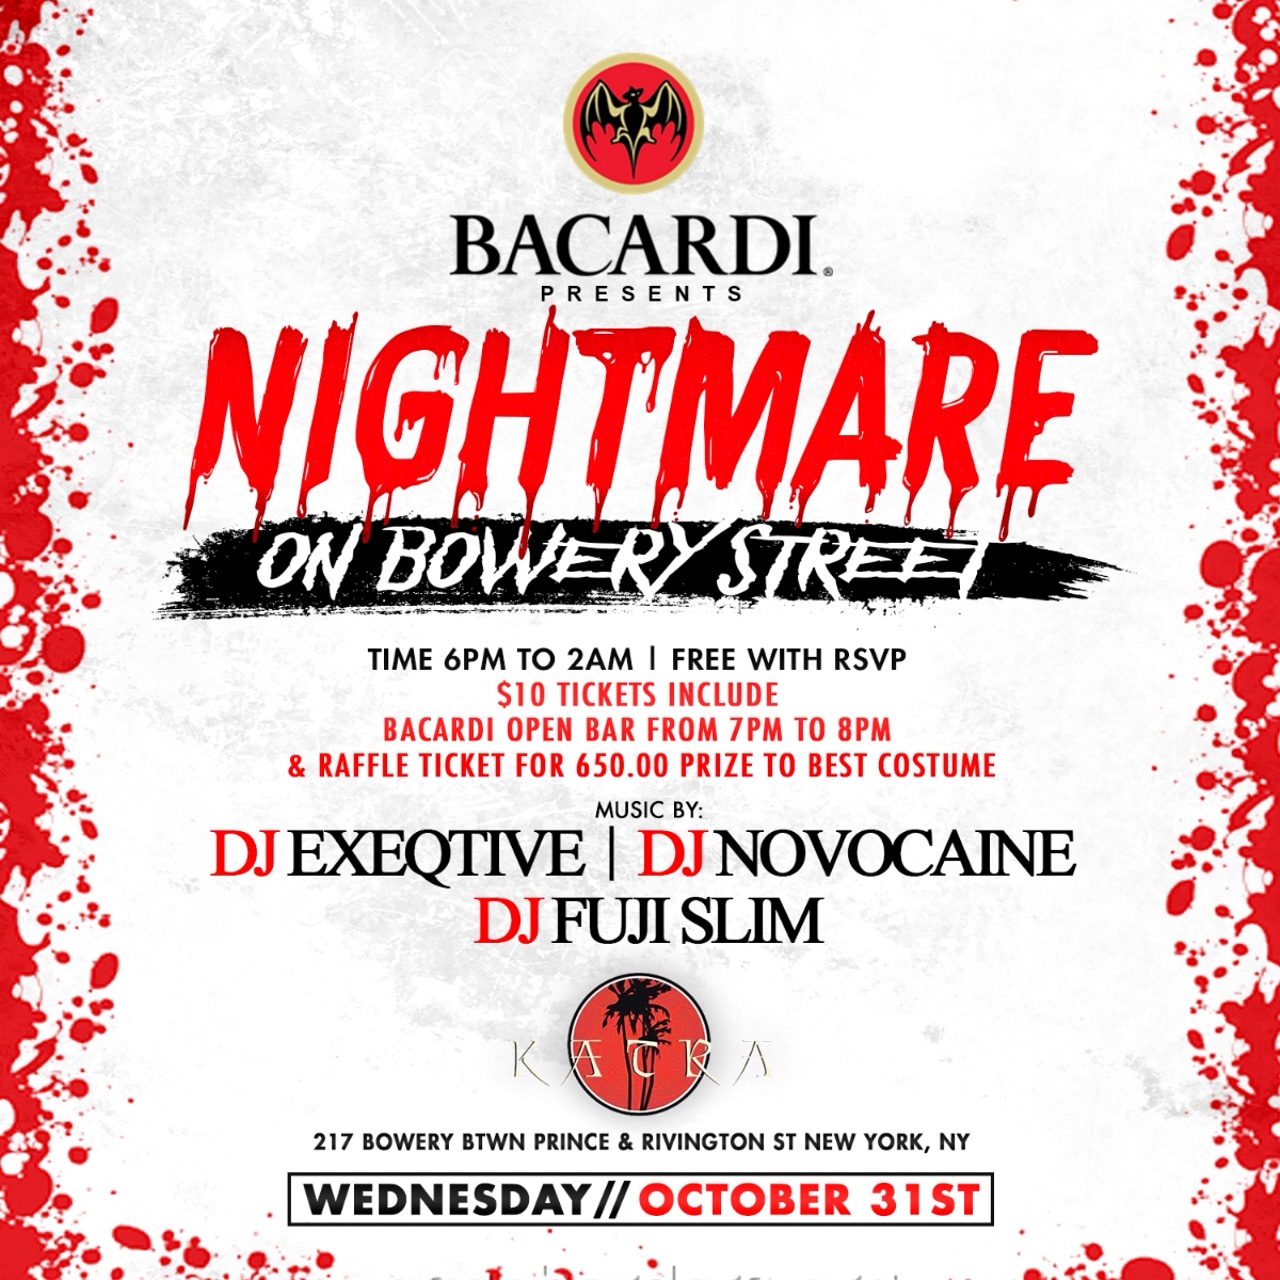 Bacardi Presents Nightmare On Bowery St